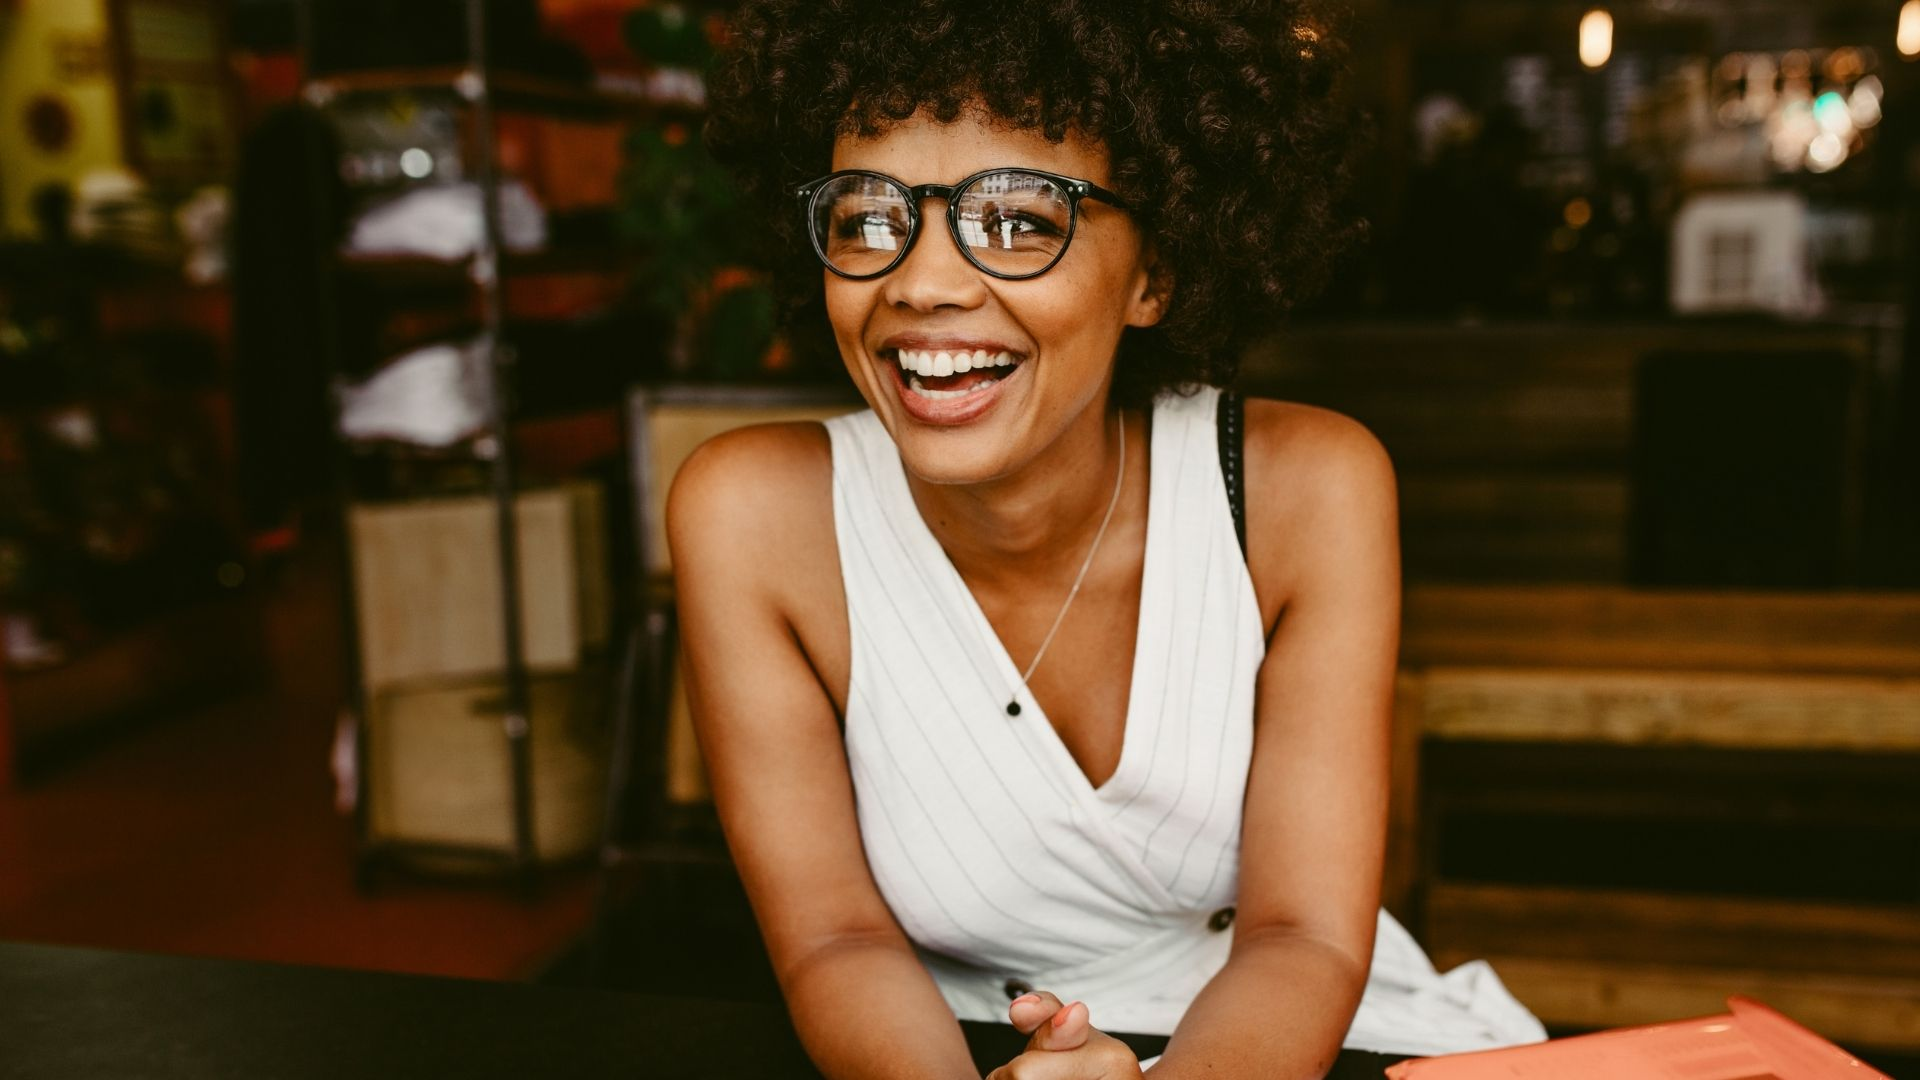 111 POSITIVE MANTRAS AND AFFIRMATIONS FOR SUCCESSFUL WOMEN ENTREPRENEURS